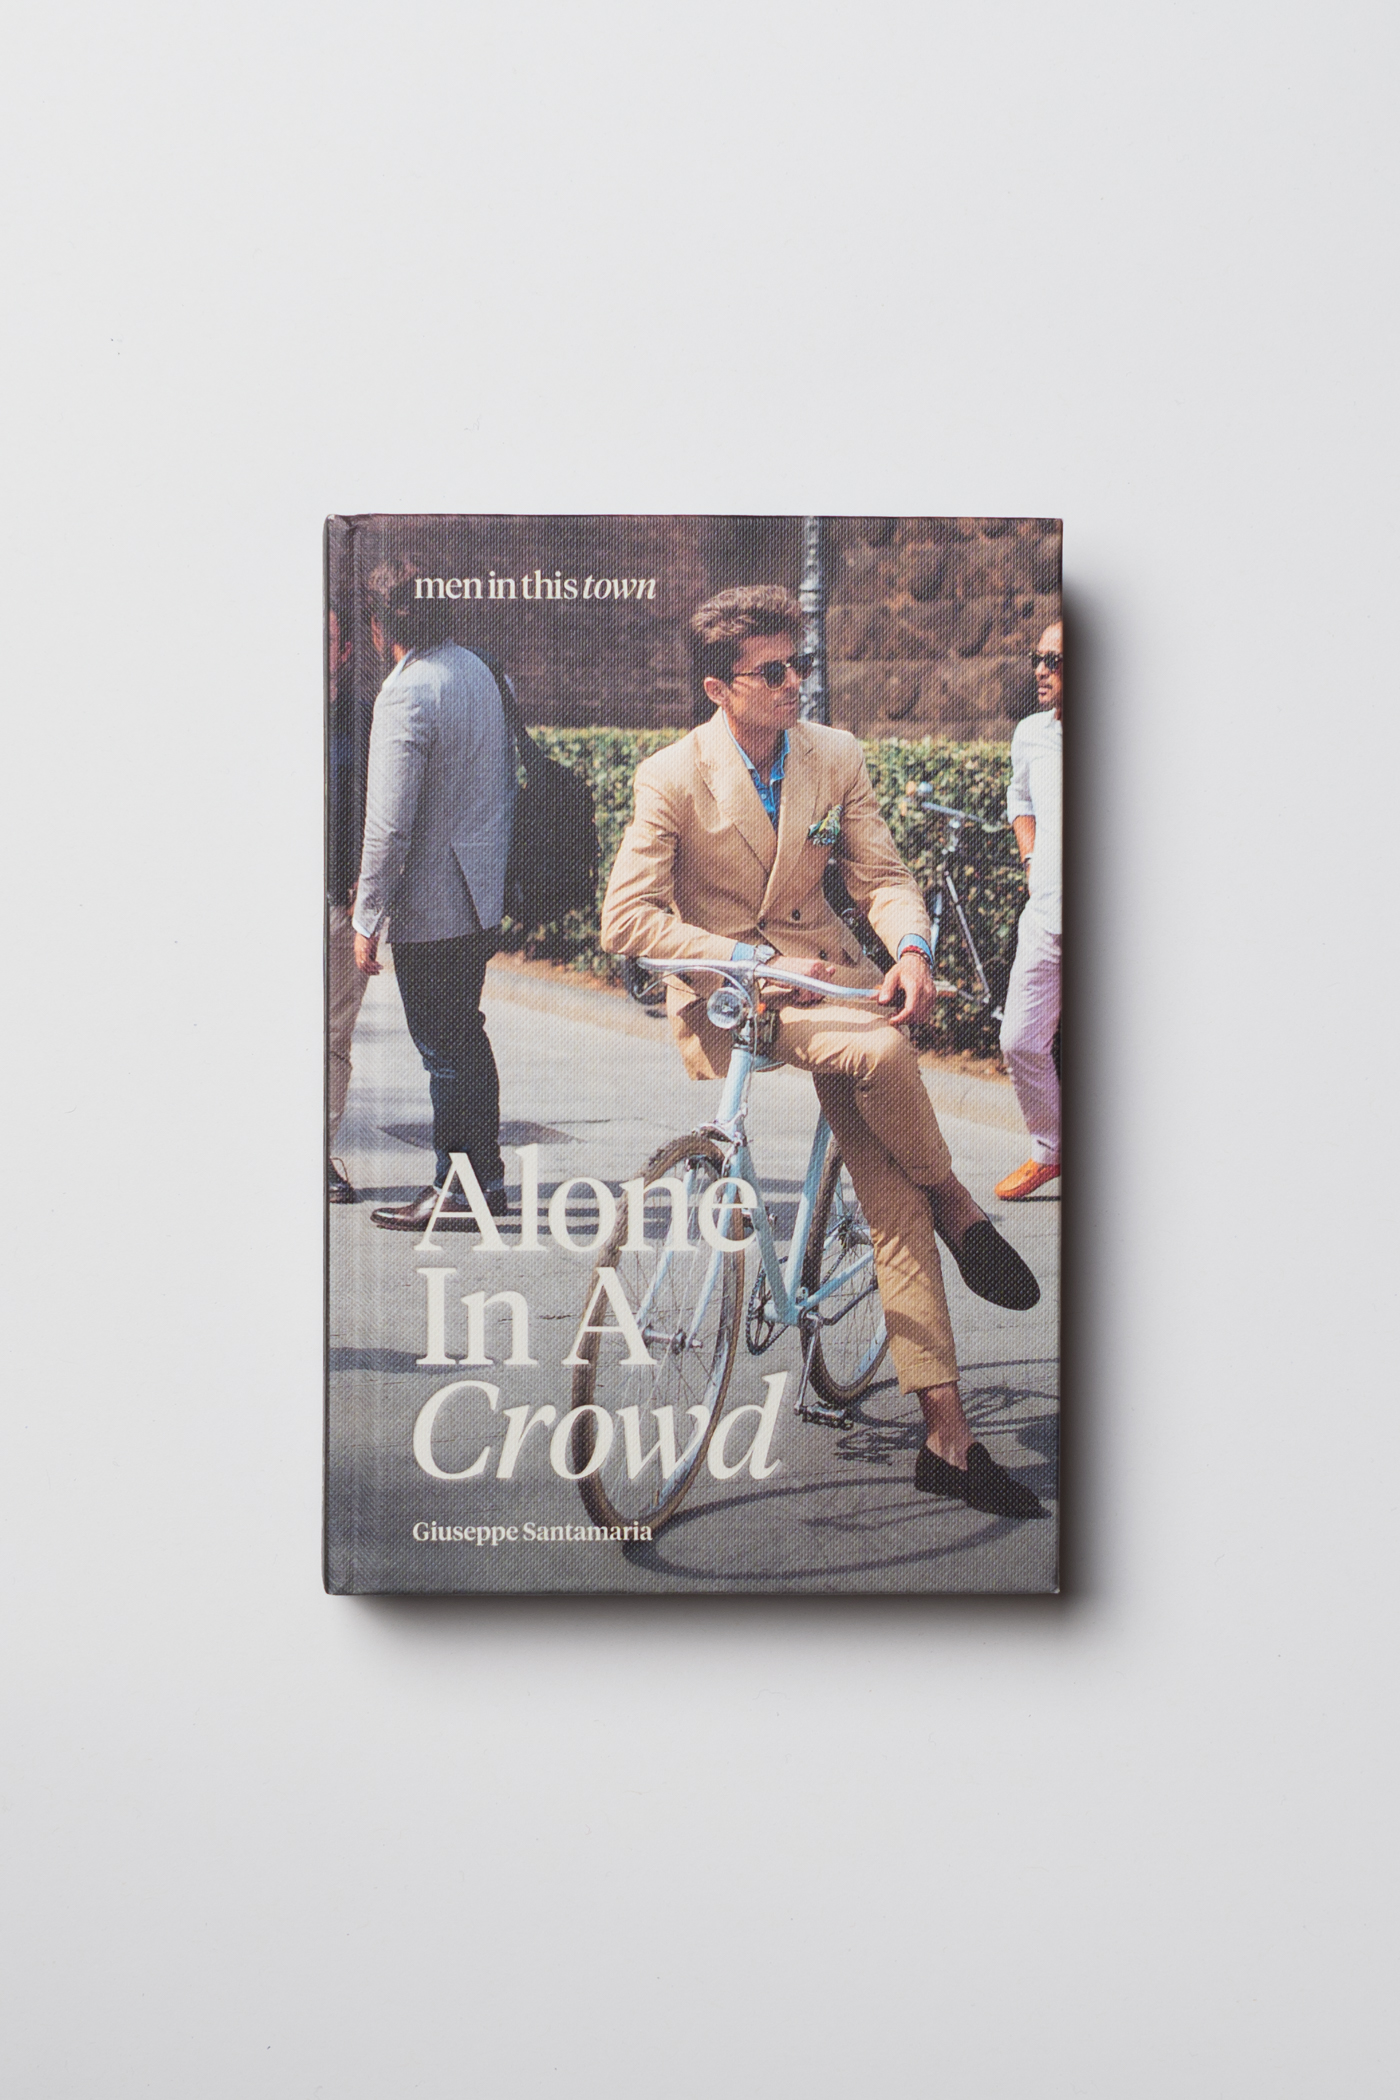 Today, I'm truly humbled to be releasing my new book,  Alone In A Crowd , worldwide! This book follows my travels from my current hometown in  Sydney  to  Melbourne ,  Tokyo ,  London ,  Paris ,  Florence ,  Madrid ,  New York  and my childhood home,  Toronto .   Some of the photos in this book focus on the menswear enthusiasts during fashion week, while others celebrate the everyday style of men — on the streets, at work and at play. Regardless of the setting, my approach has always been as an outsider looking in, observing a particular quality about someone's personal style and how they hold themselves as they go about their day.   Alone In A Crowd  is available to   order   online and is in all good bookstores  worldwide  from this week. Thank you for following along these past 7 years, I hope you love this book!  —  Giuseppe